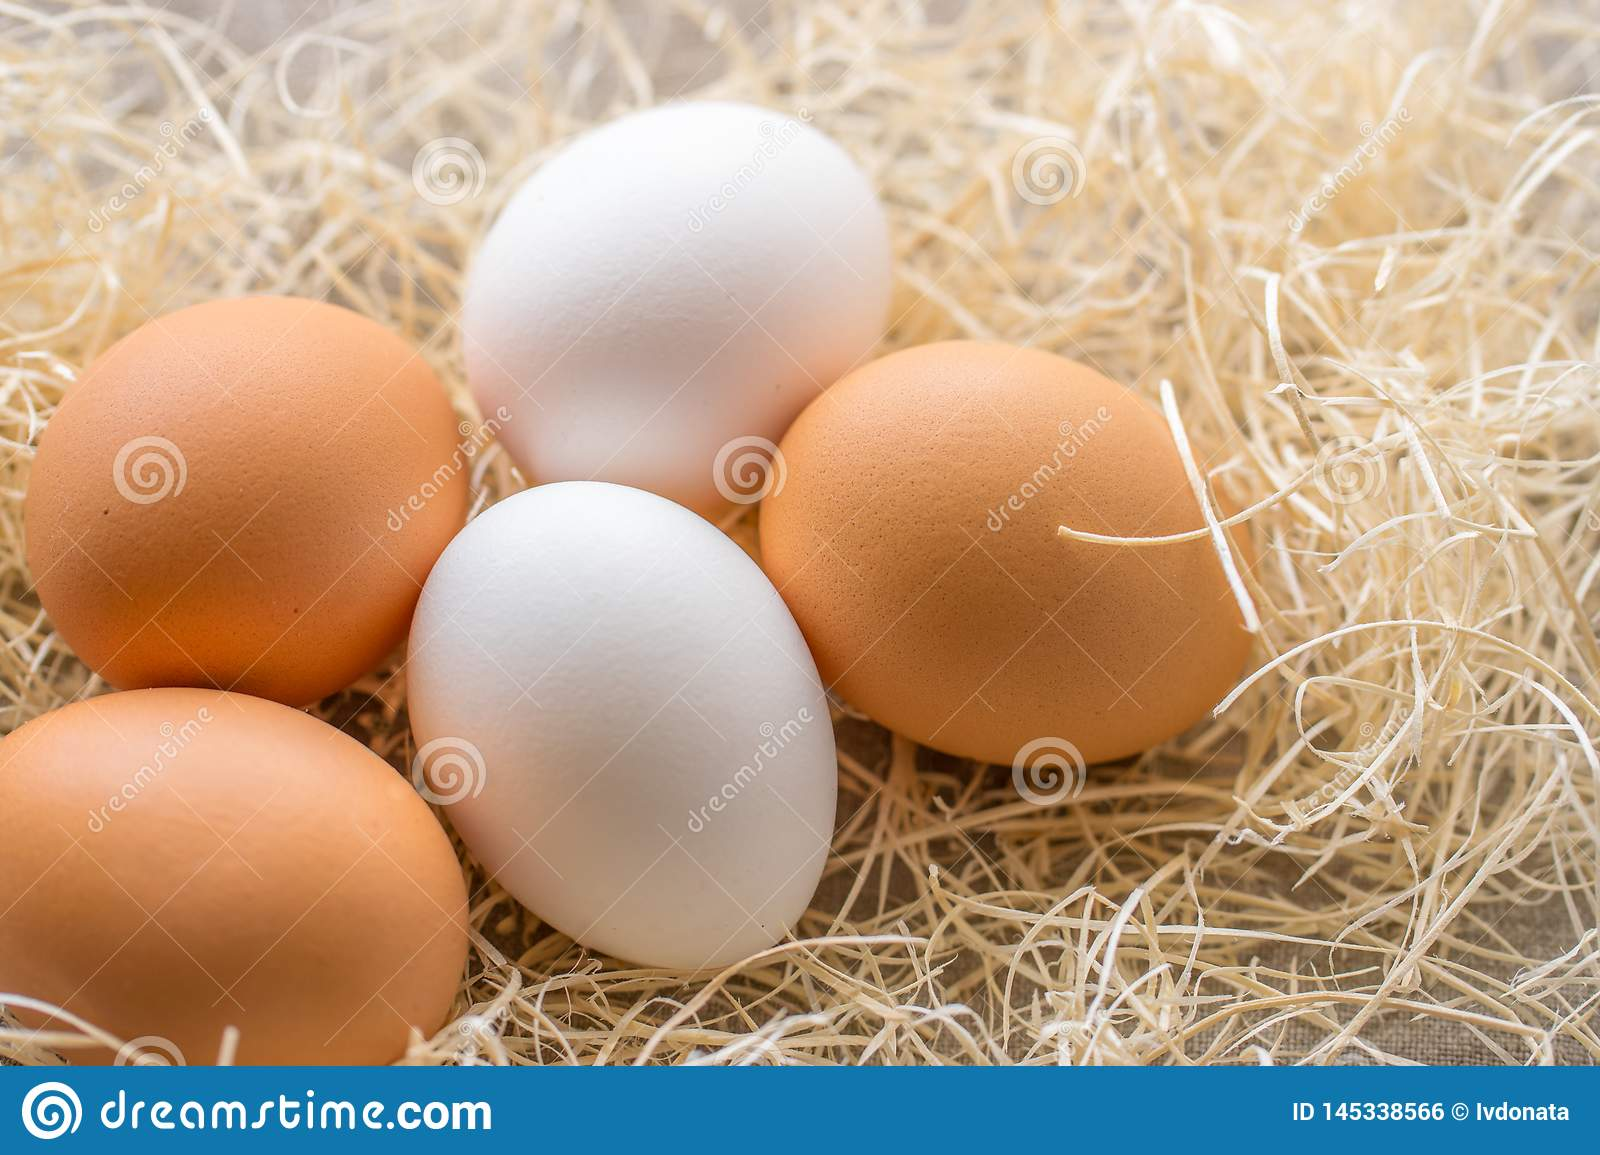 Two white and three brown eggs on the background of hay